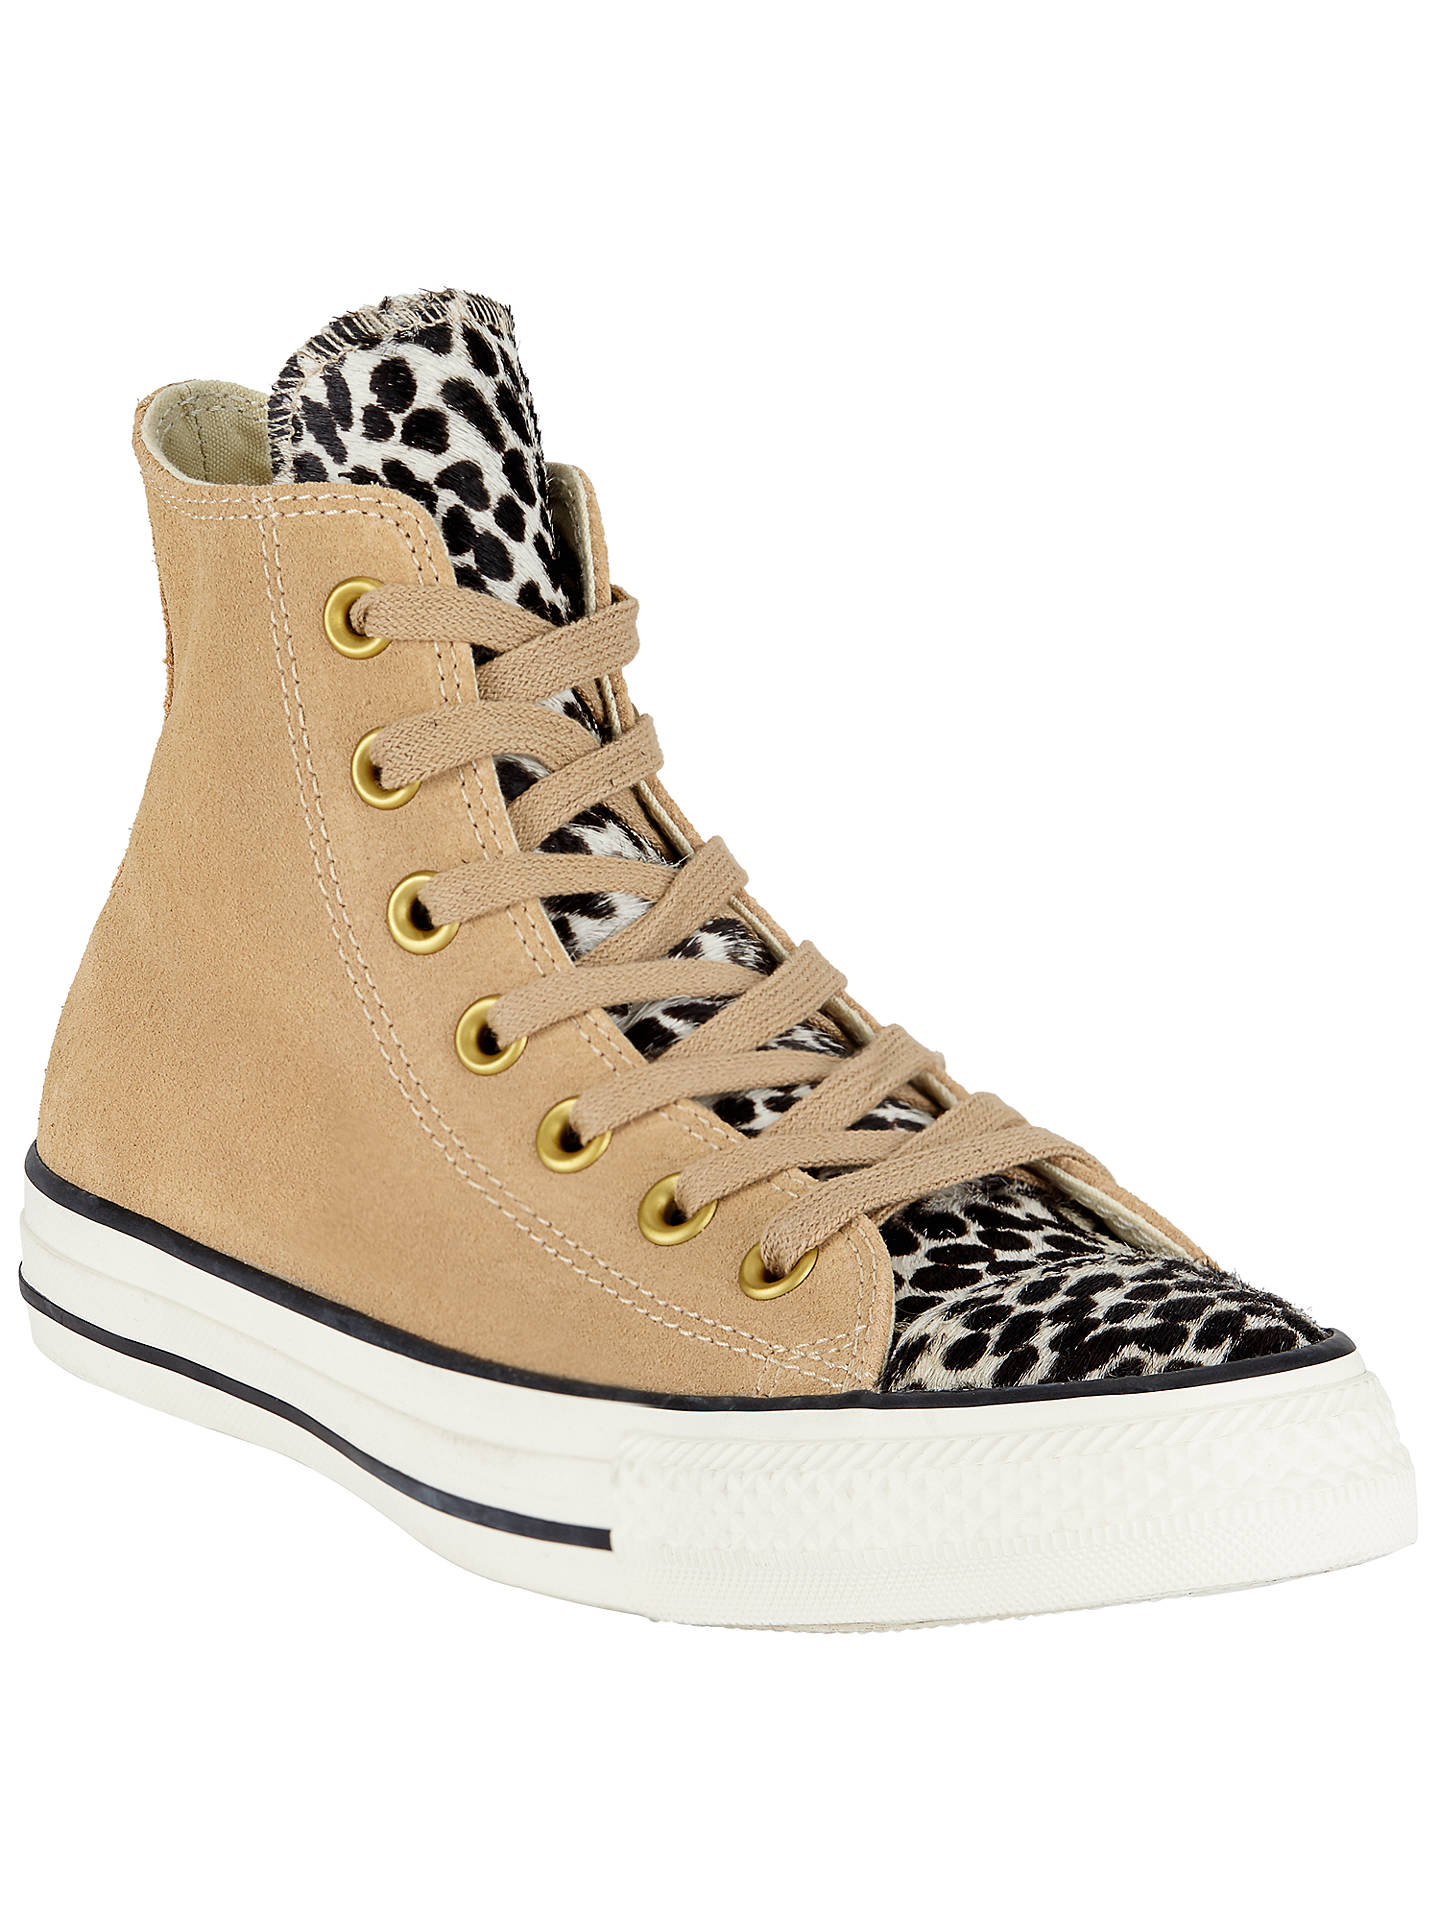 0e22e10717be Buy Converse Chuck Taylor All Star Animal Print Hi-Top Trainers